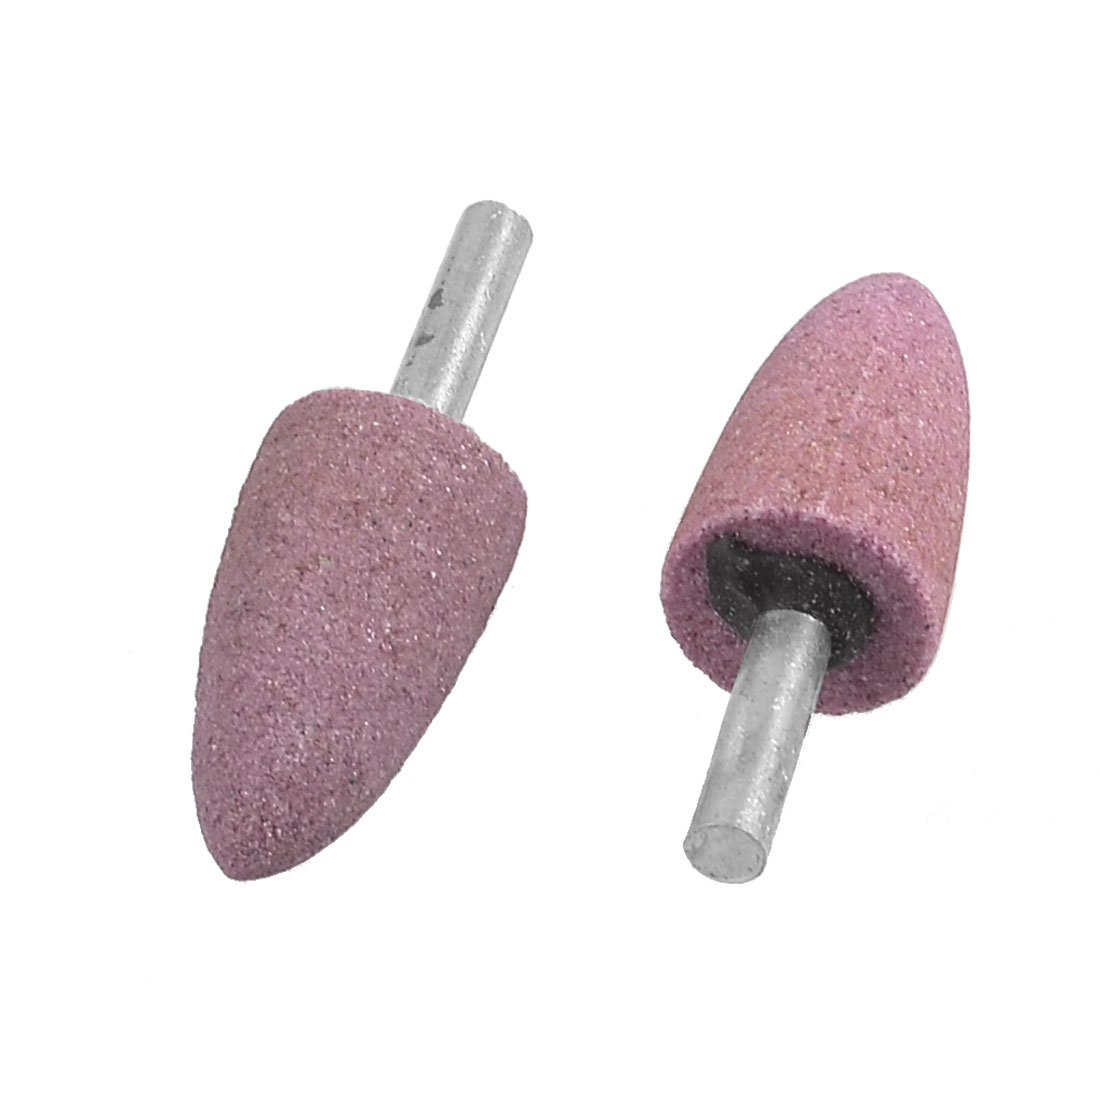 2 Pcs 20mm Diameter Conical Mounted Grinding Stones Pink